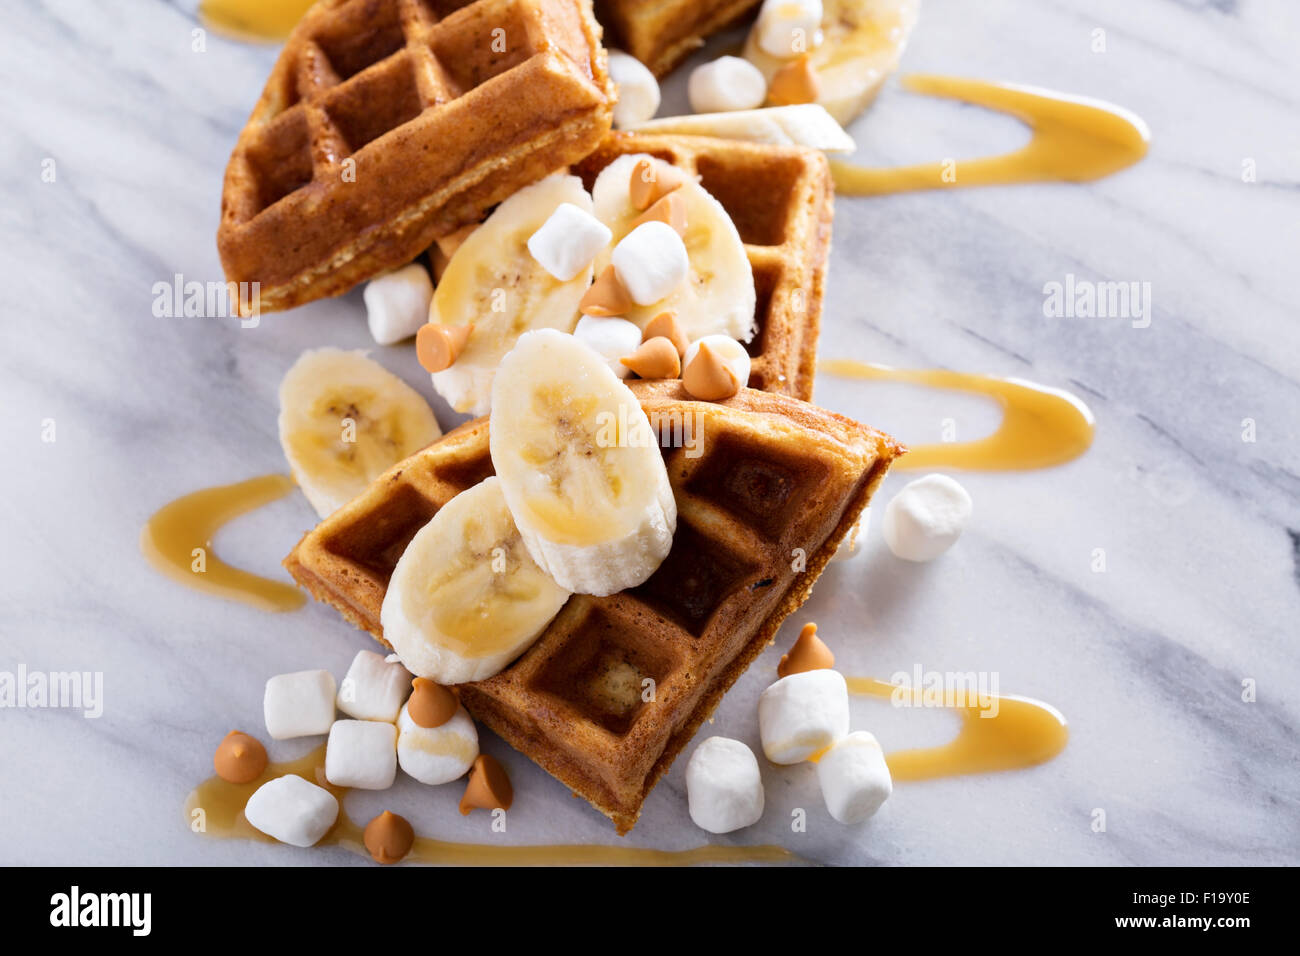 Waffles with peanut butter and bananas topped with caramel syrup - Stock Image